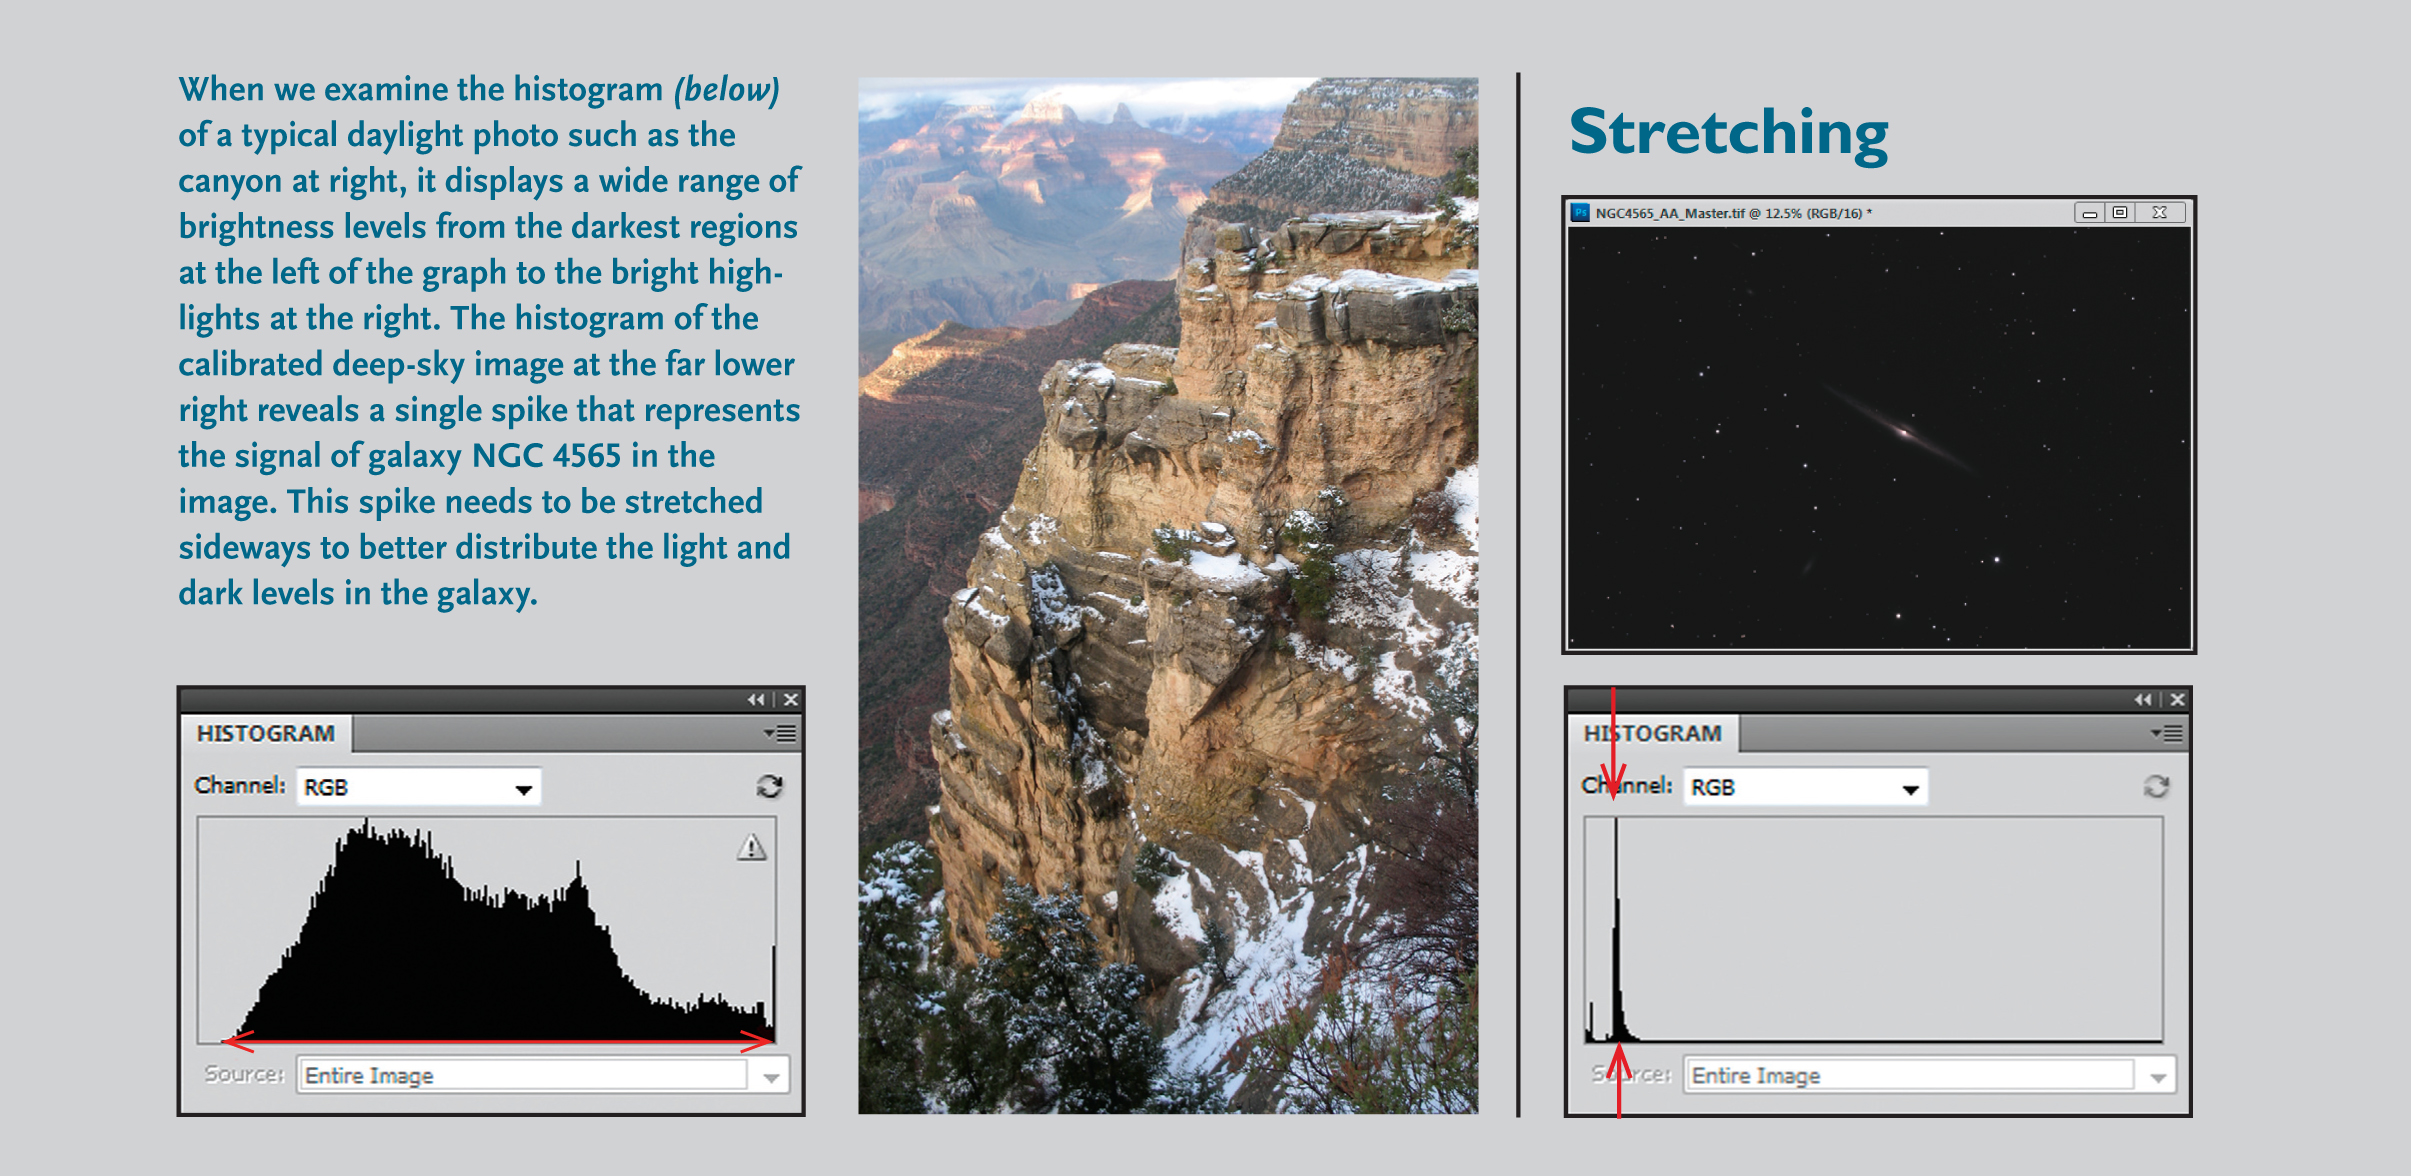 Stretching Images after taking them using CCD imaging.